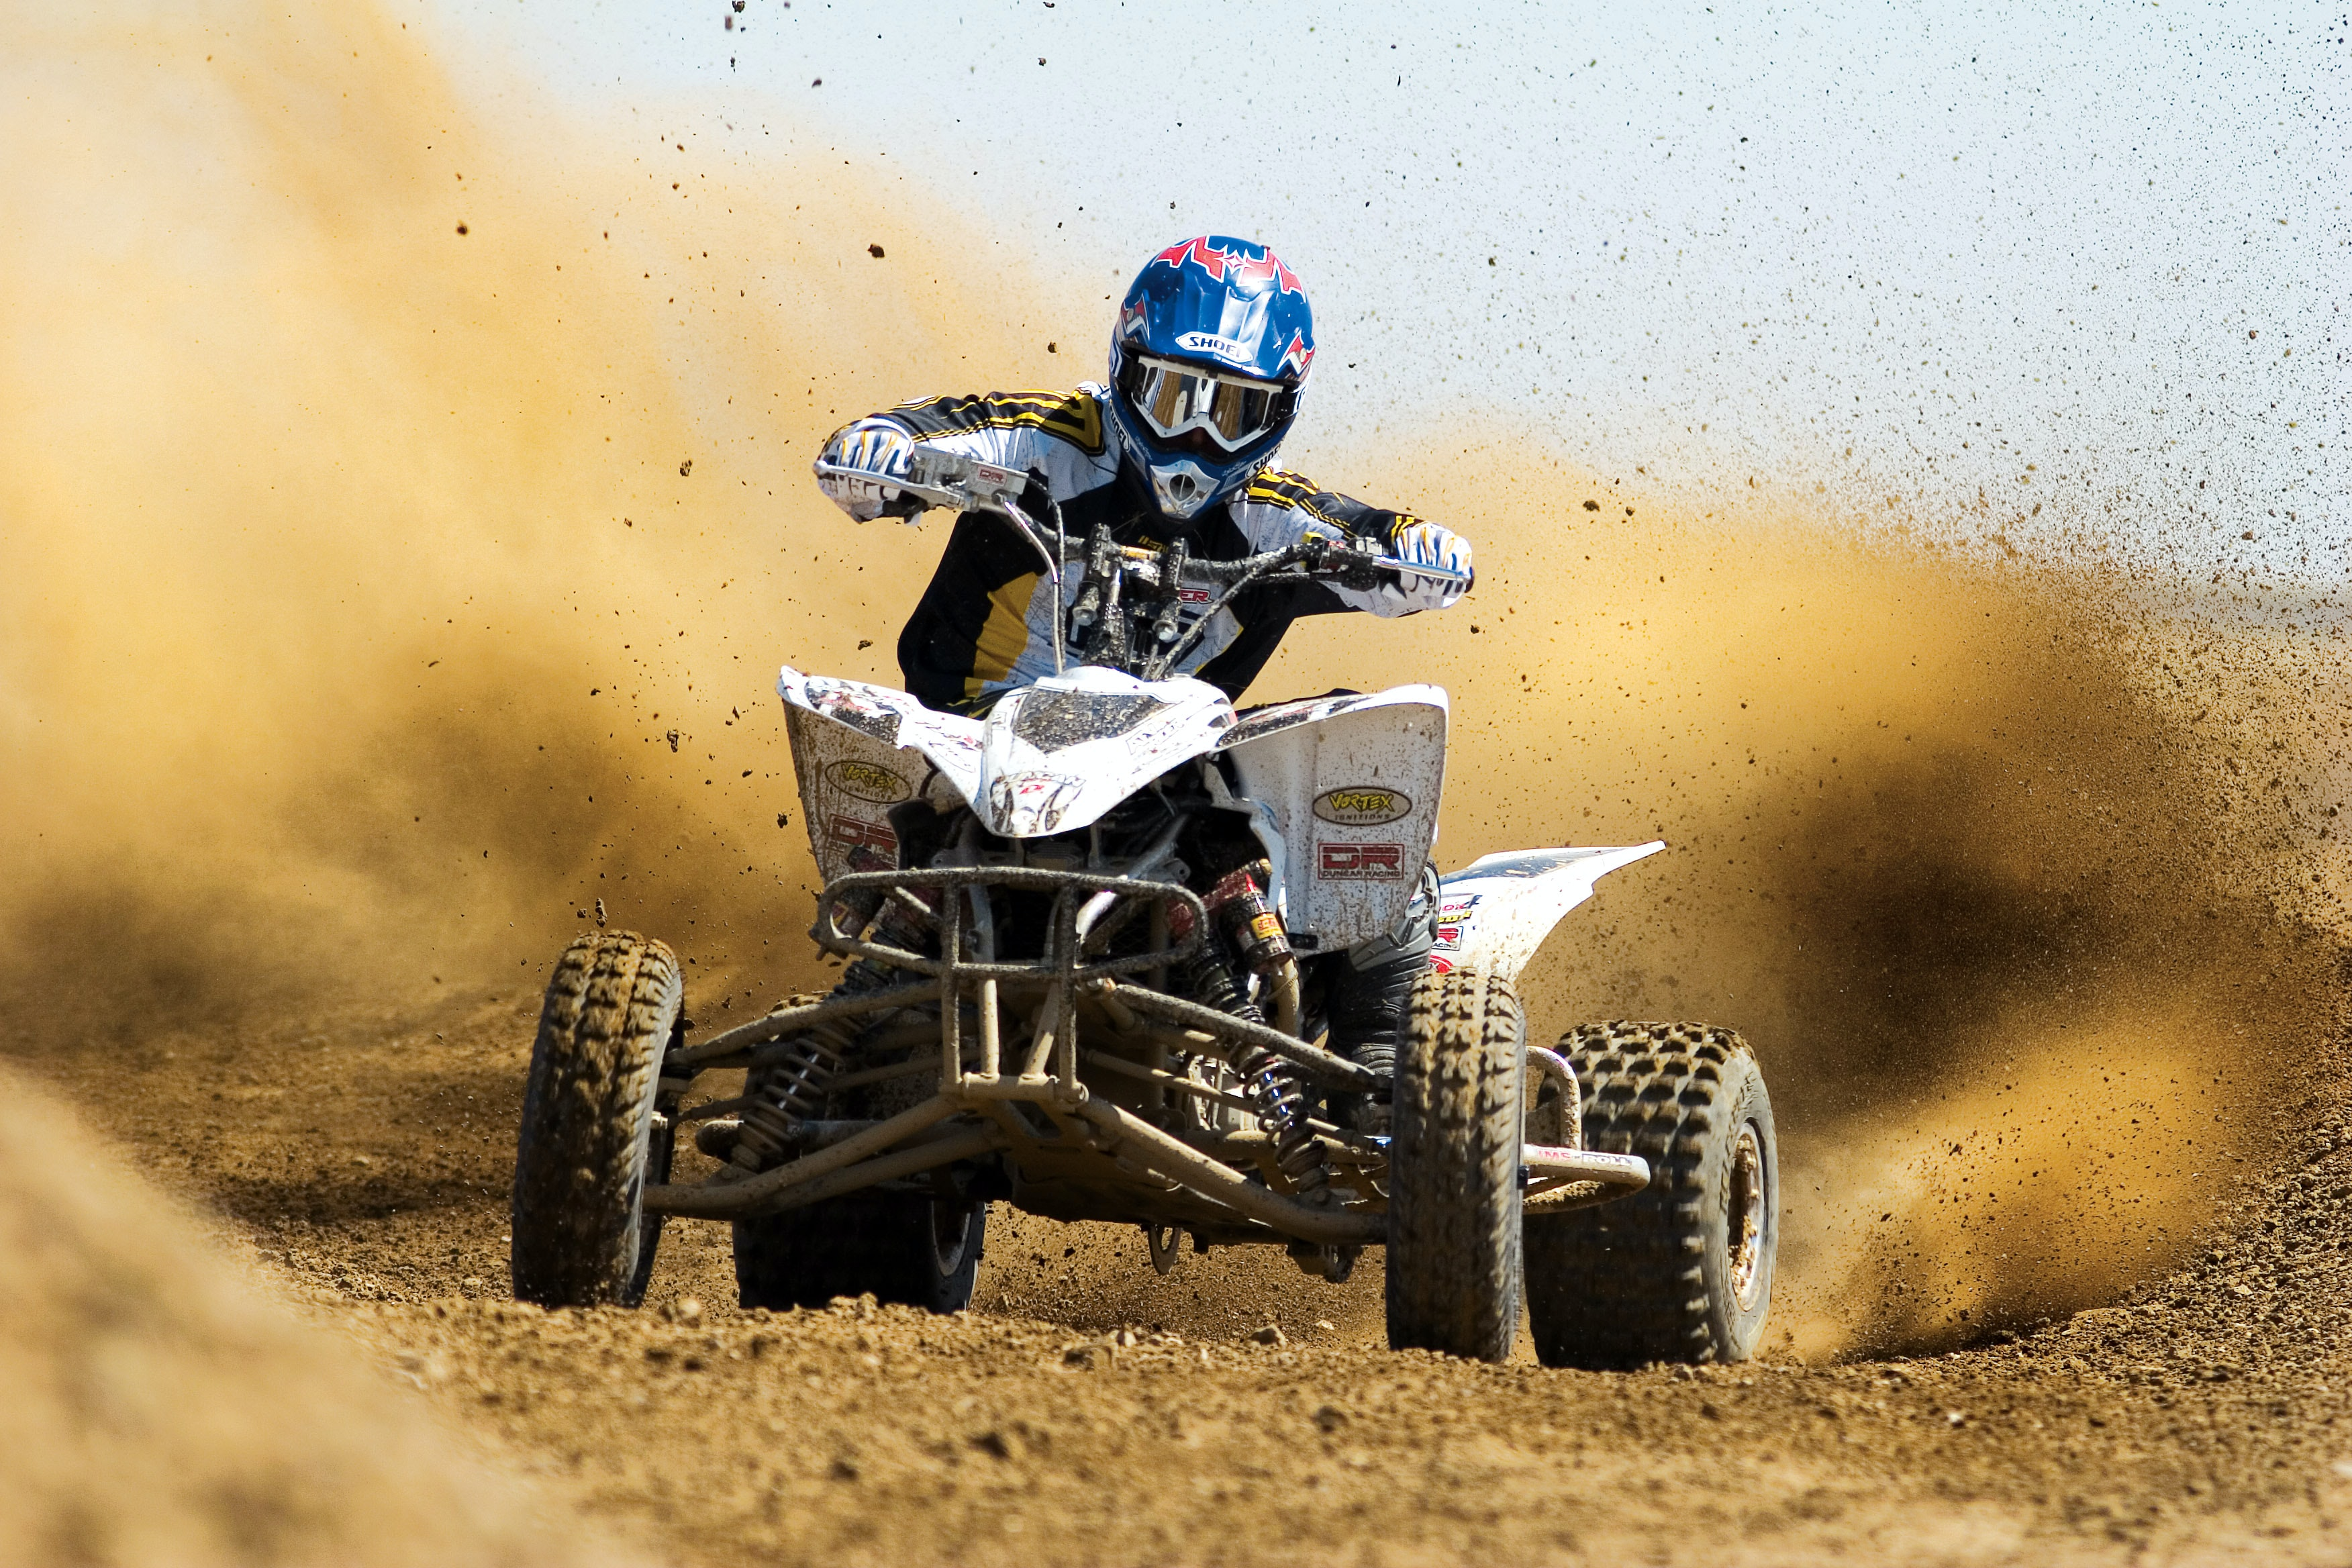 An off road quad racer driving through the dirt on a motorsport race track